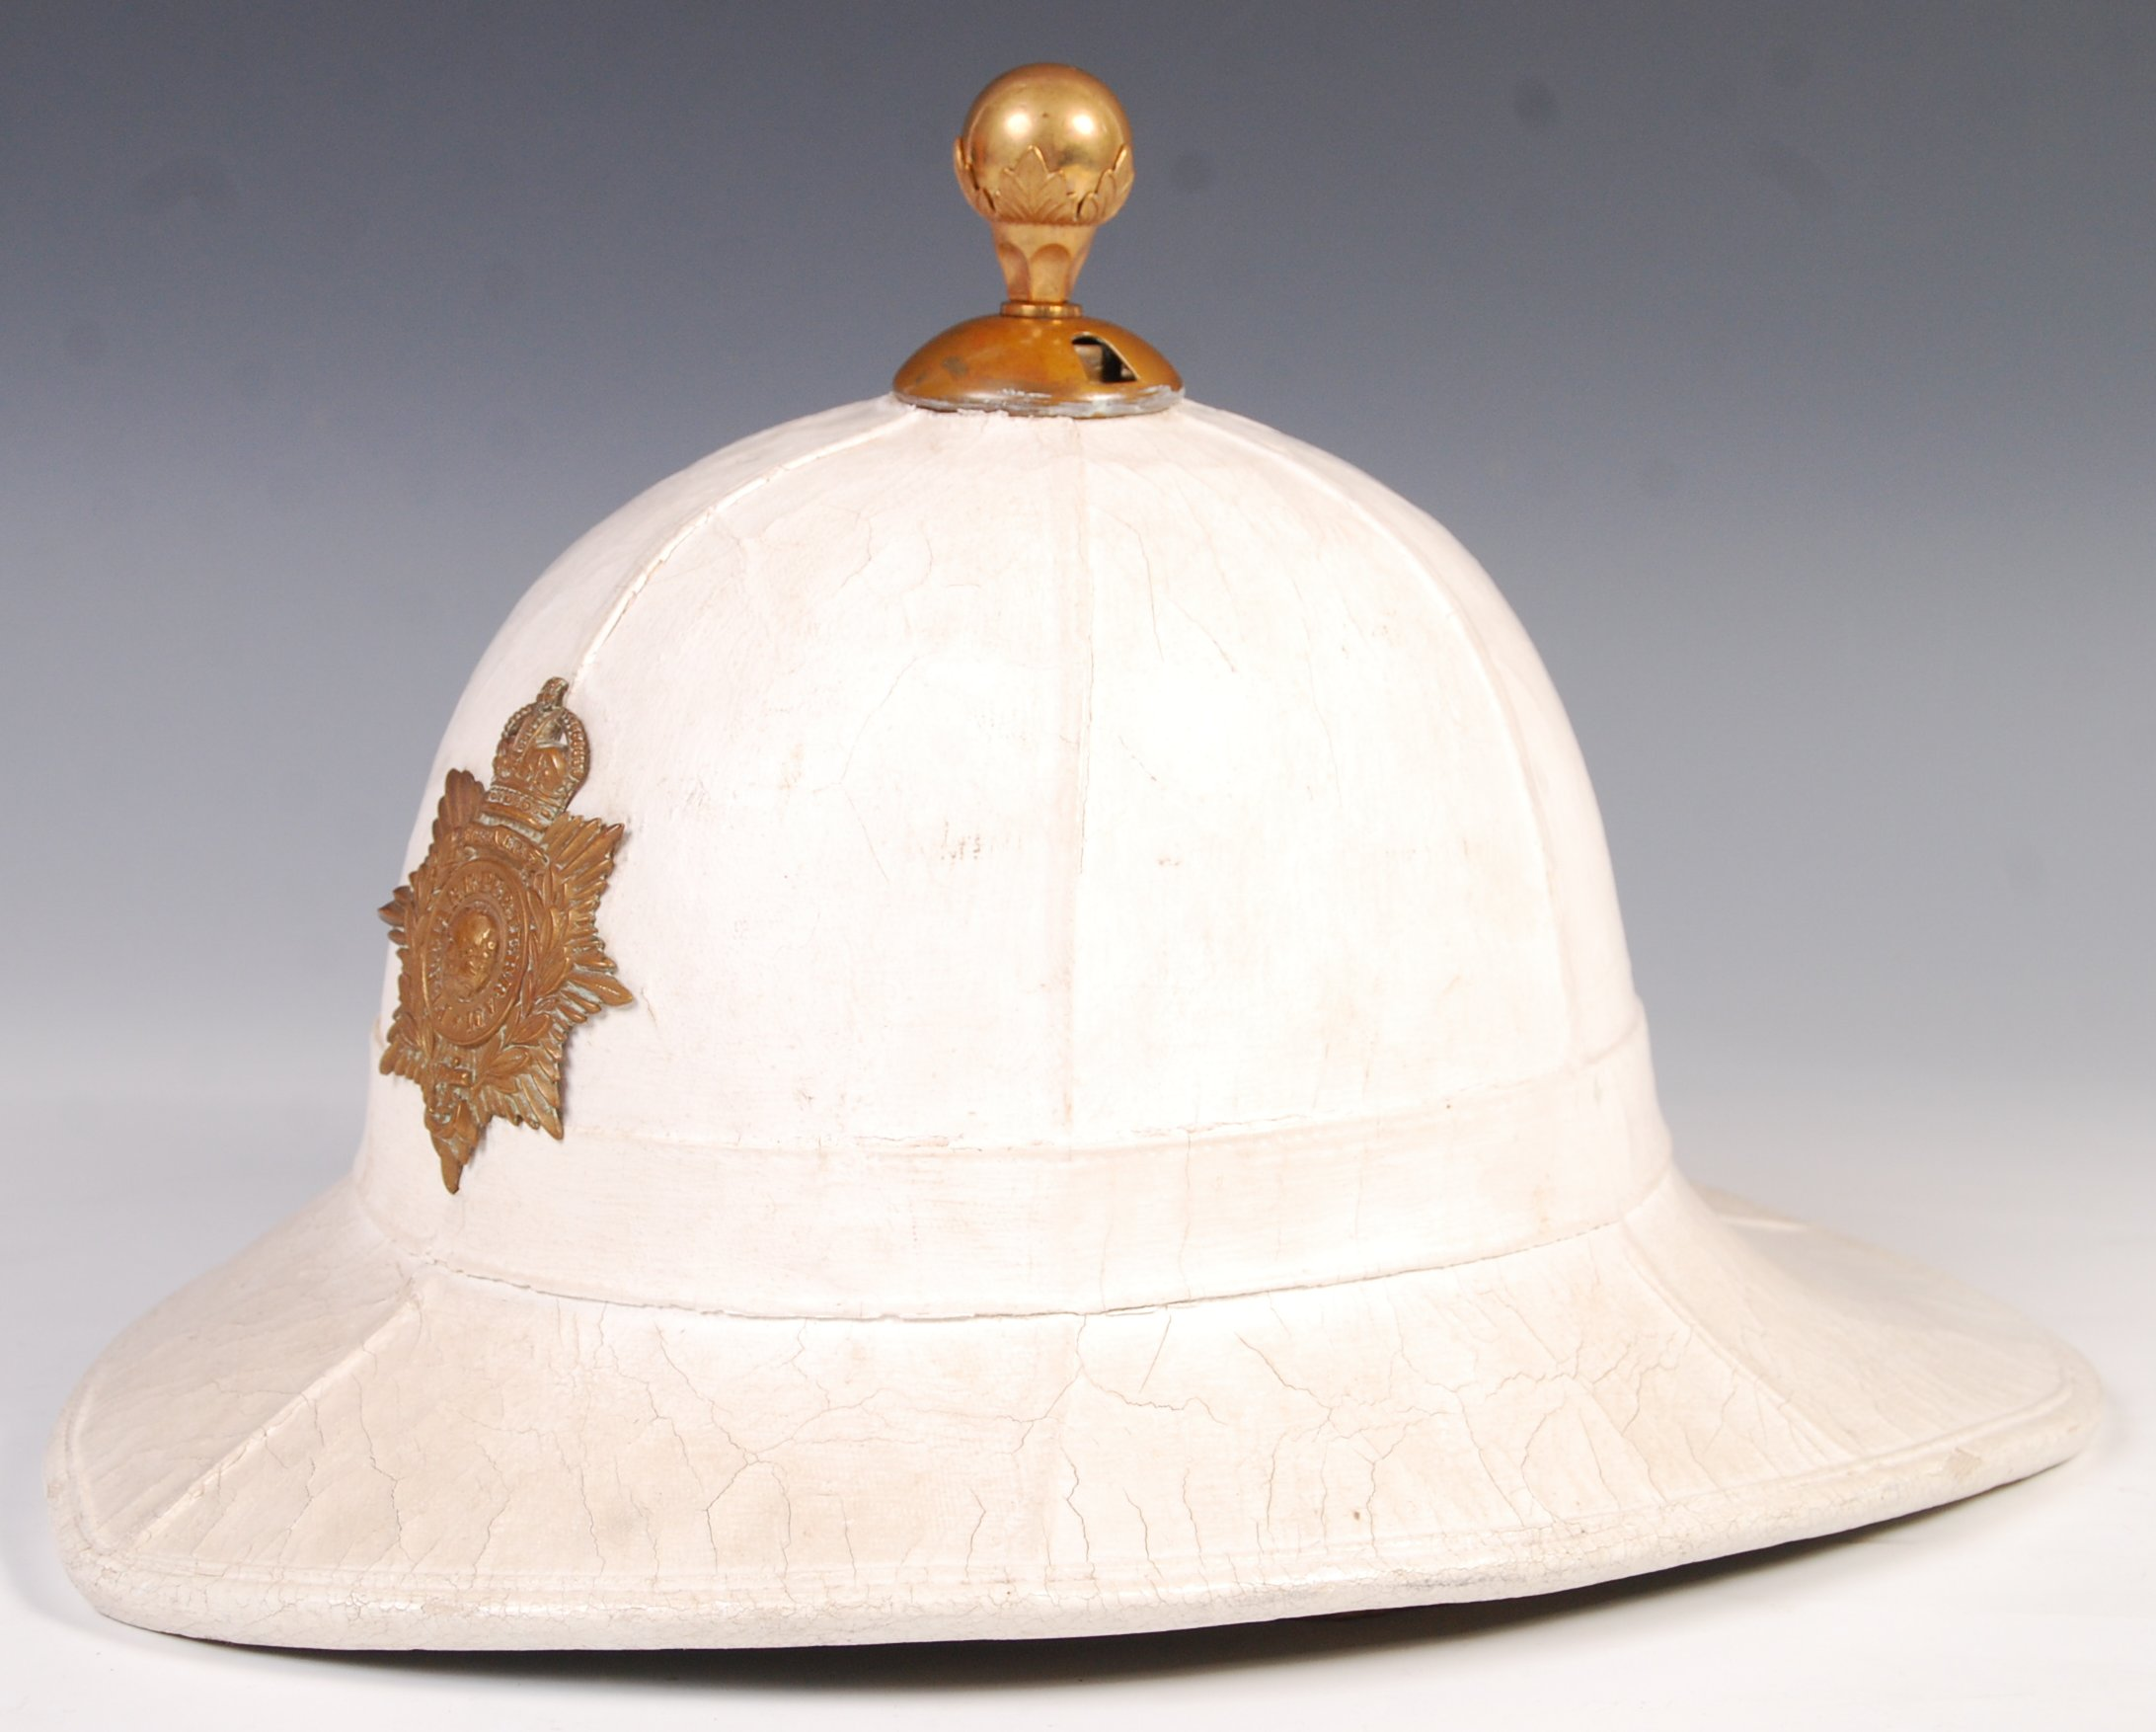 20TH CENTURY ROYAL MARINES PITH / TOPEE HELMET